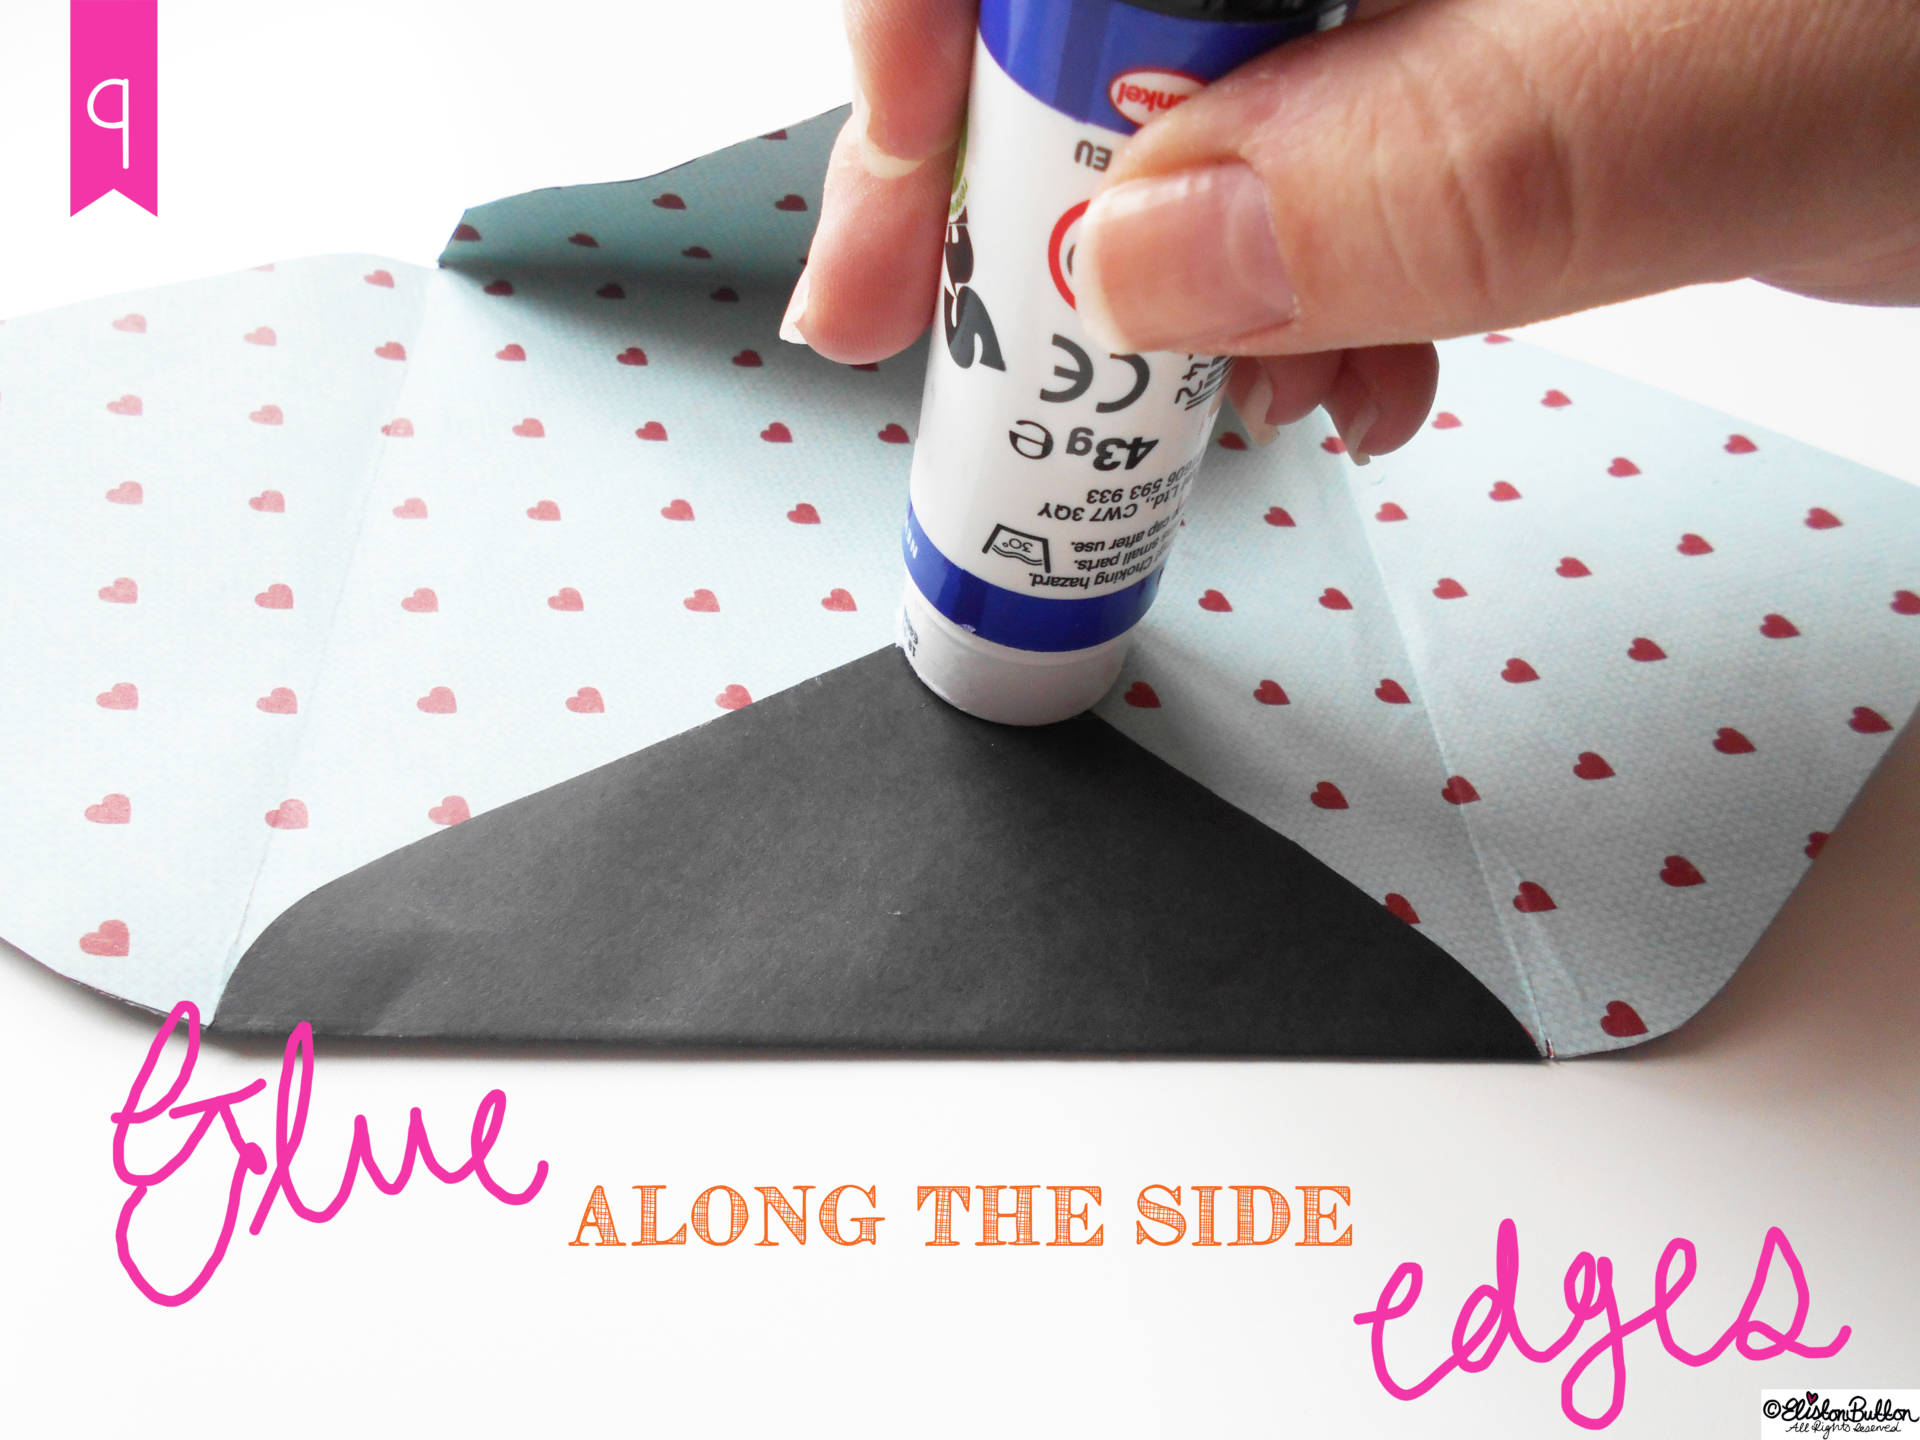 14. Glue Along the Side Edges. - Tutorial Tuesday - Handmade Fancy Envelopes at www.elistonbutton.com - Eliston Button - That Crafty Kid – Art, Design, Craft & Adventure.